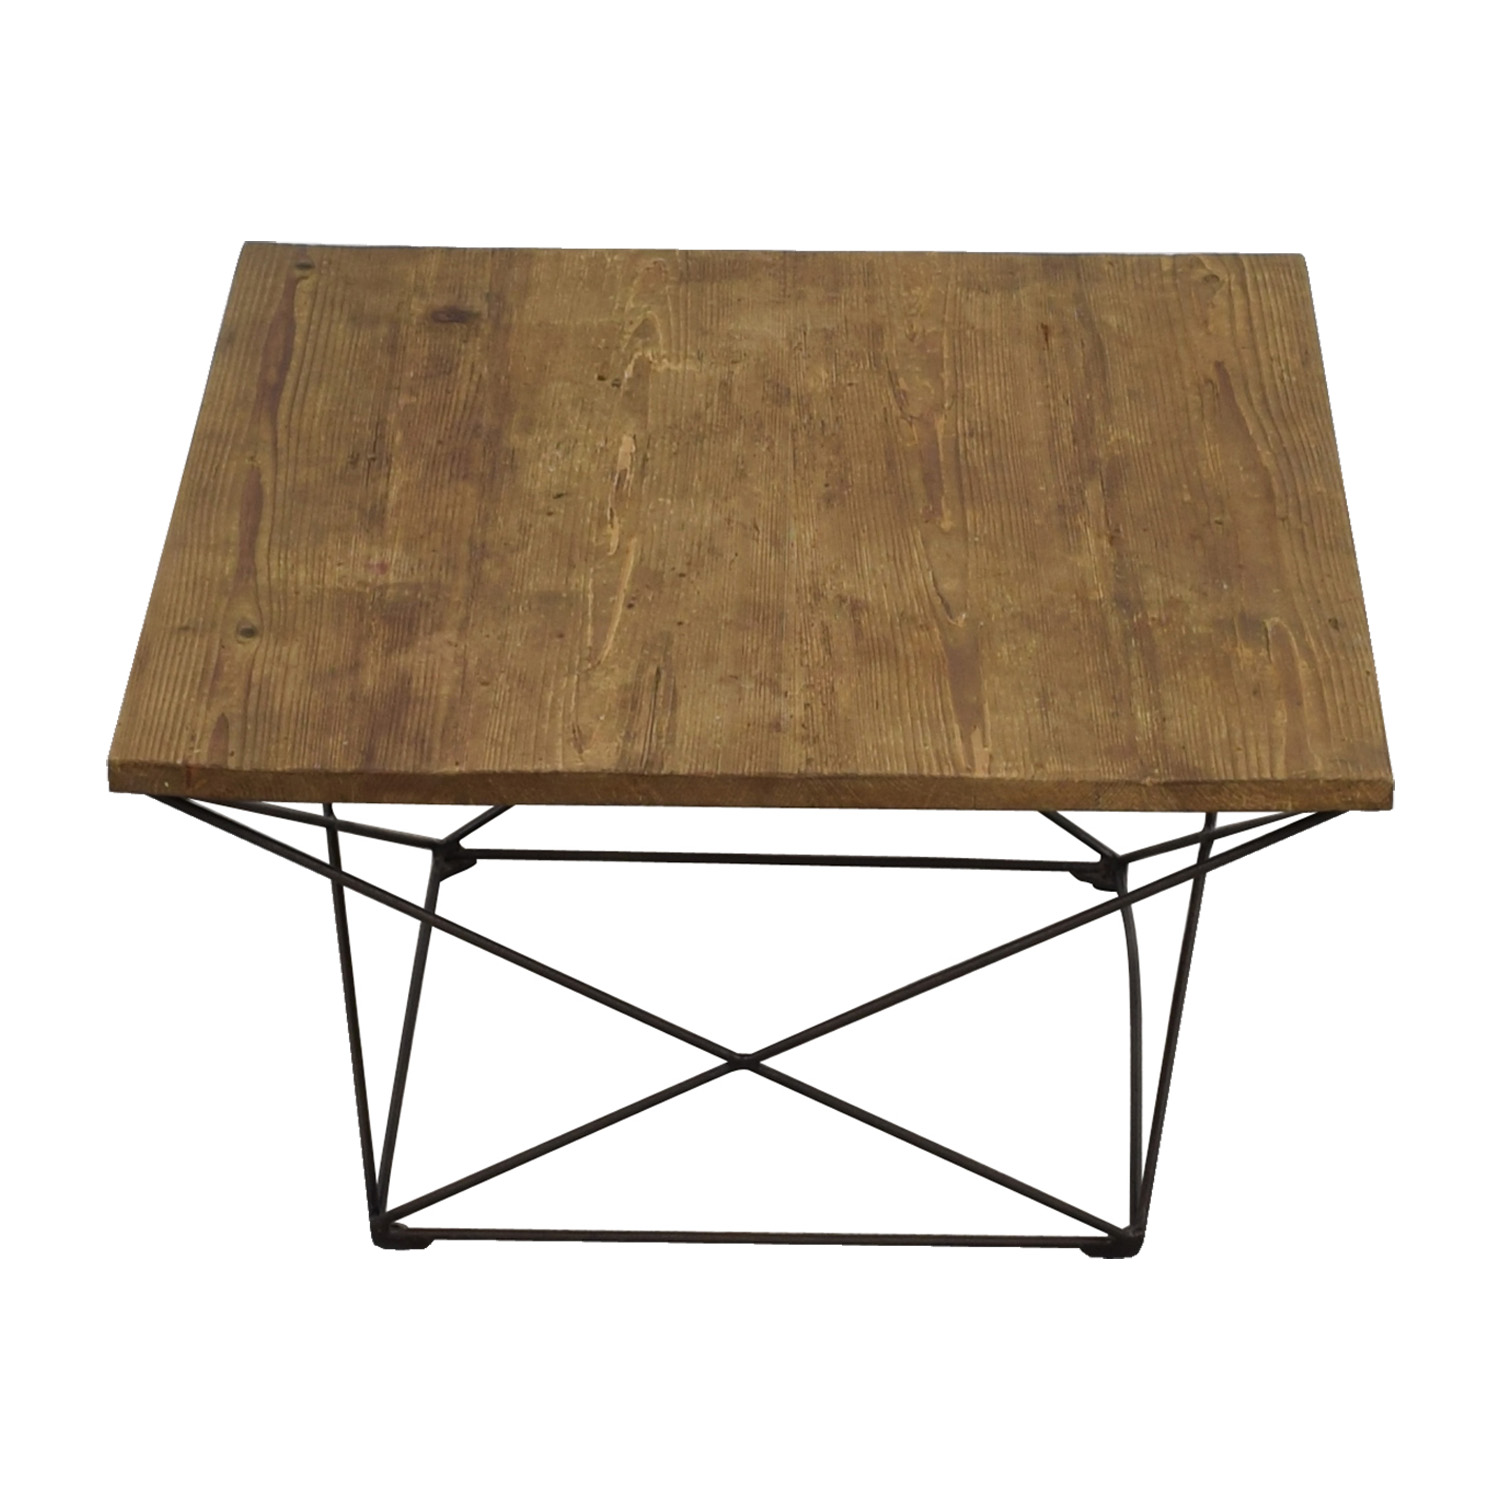 Coffee Tables For Sale Used Best Home Design 2018